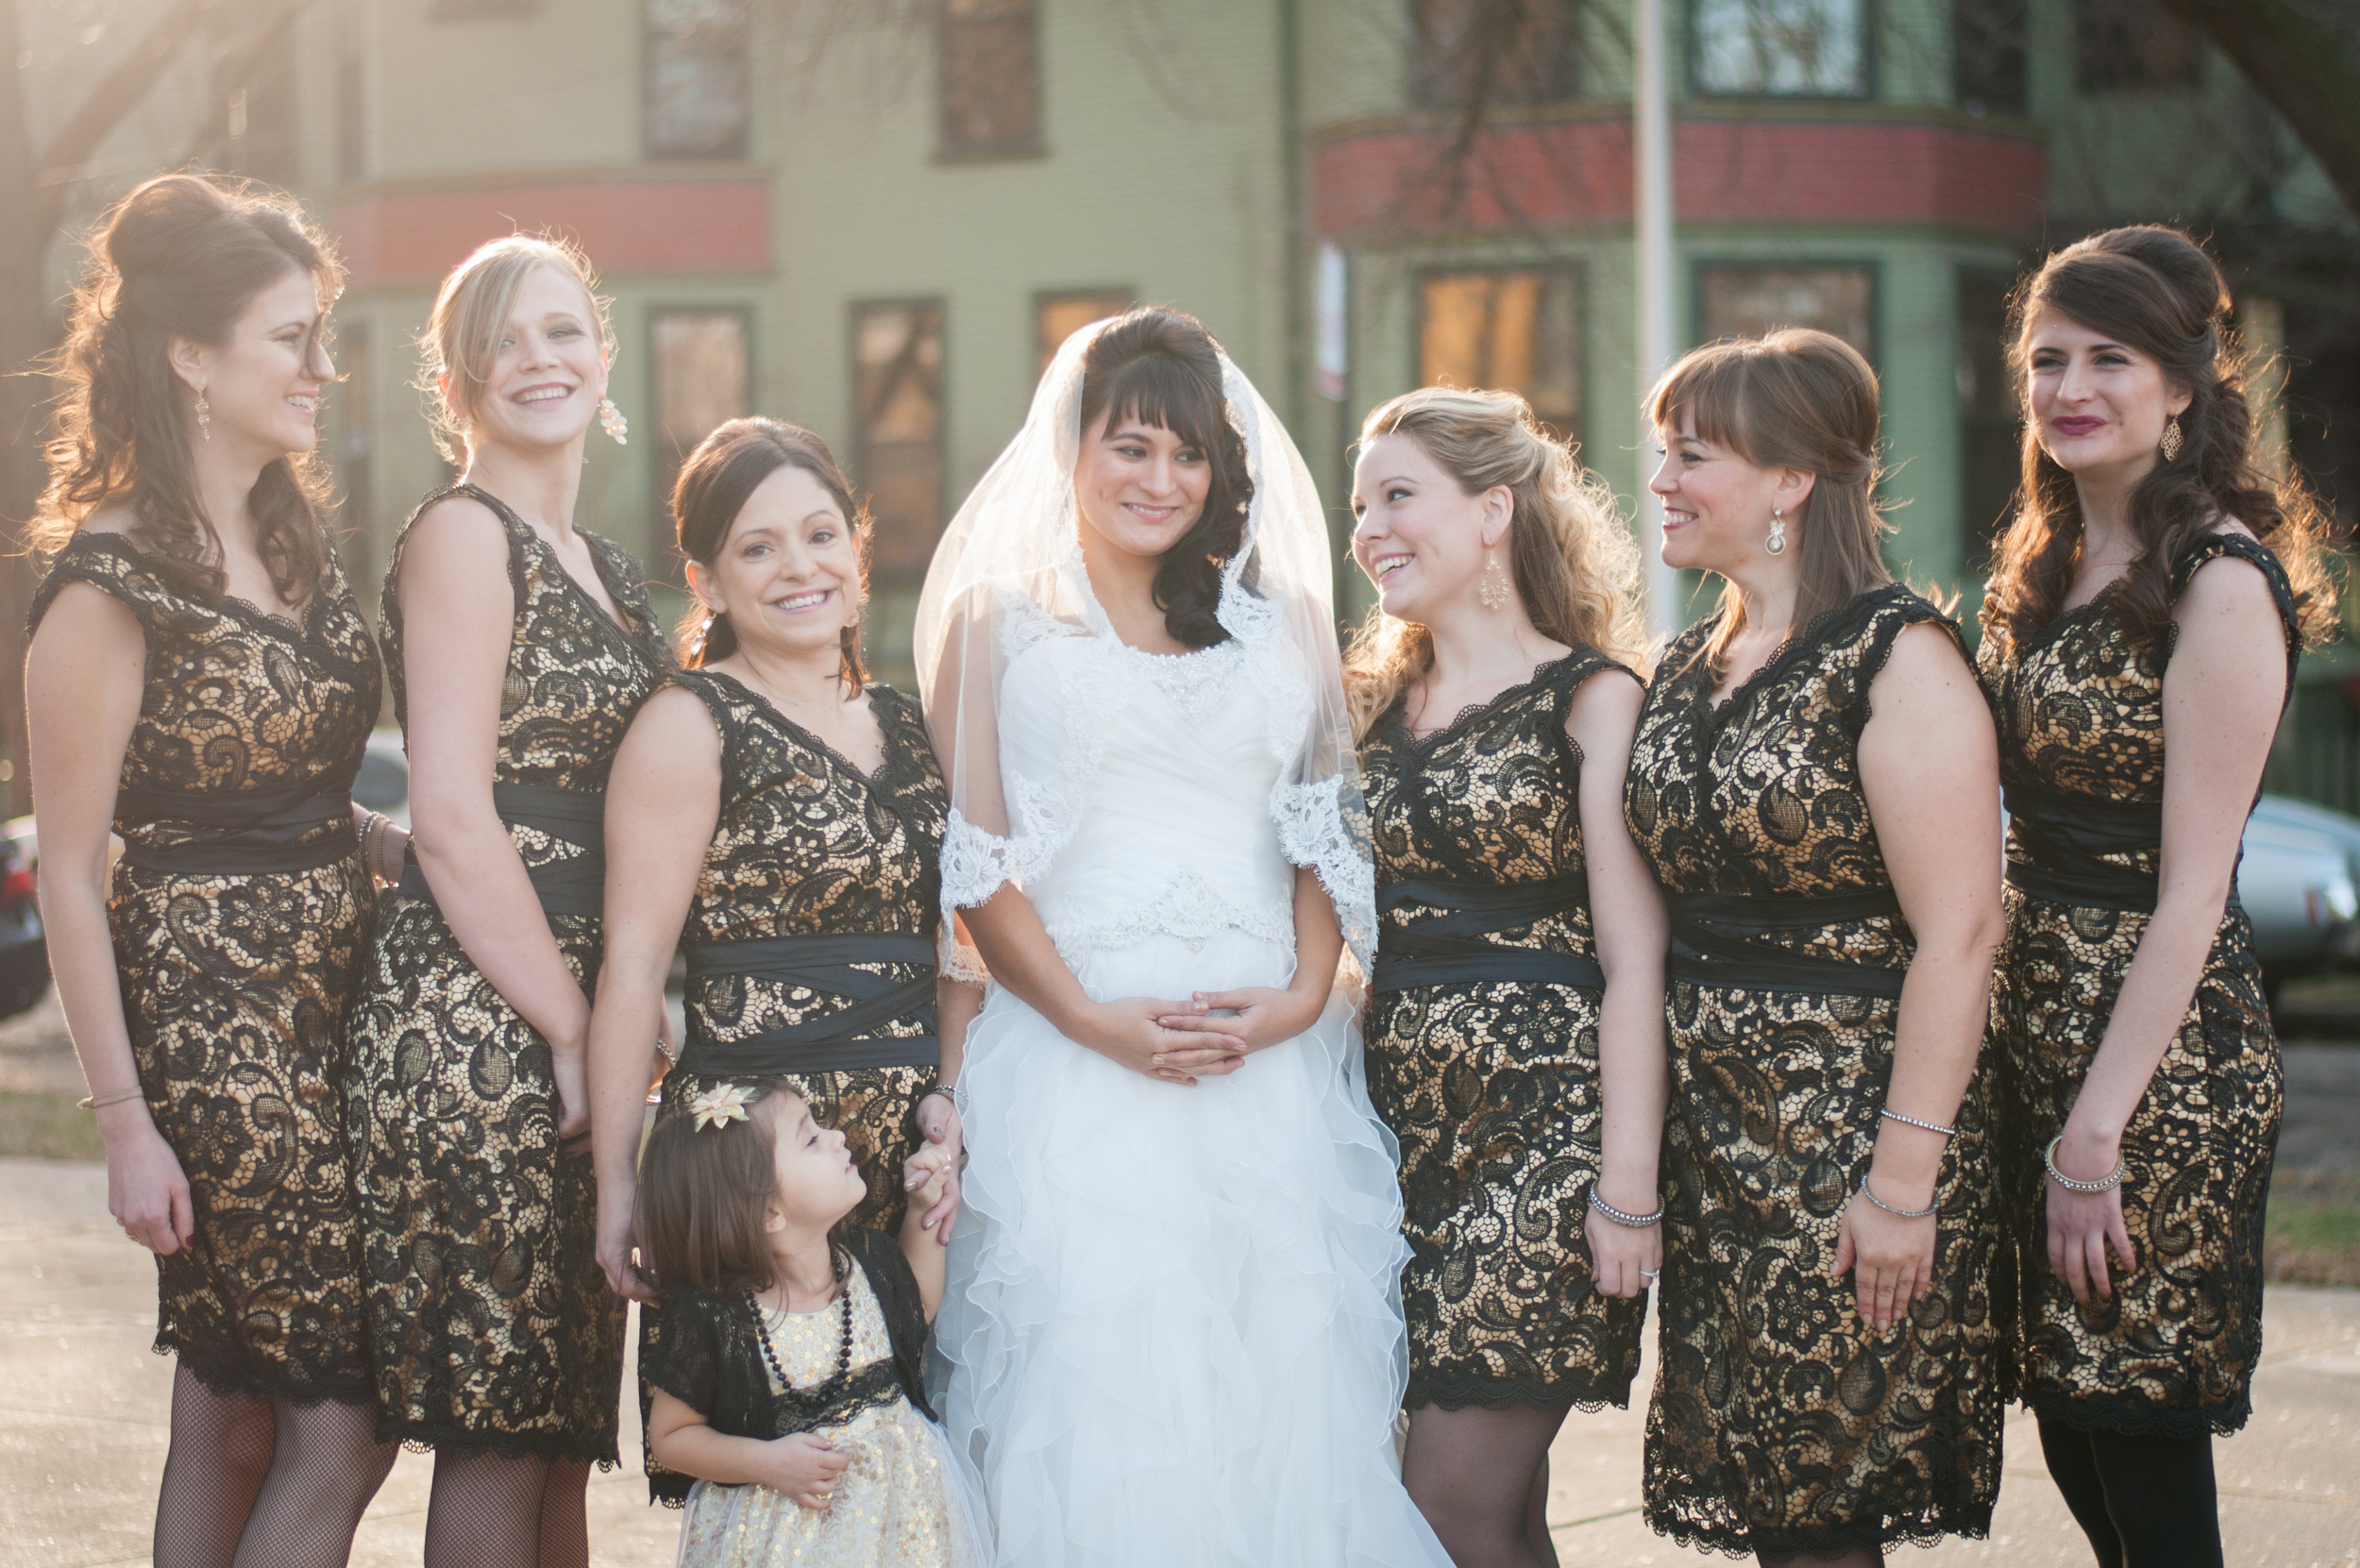 meredithdonnellyphotography-Williams Wedding 2014-218.jpg